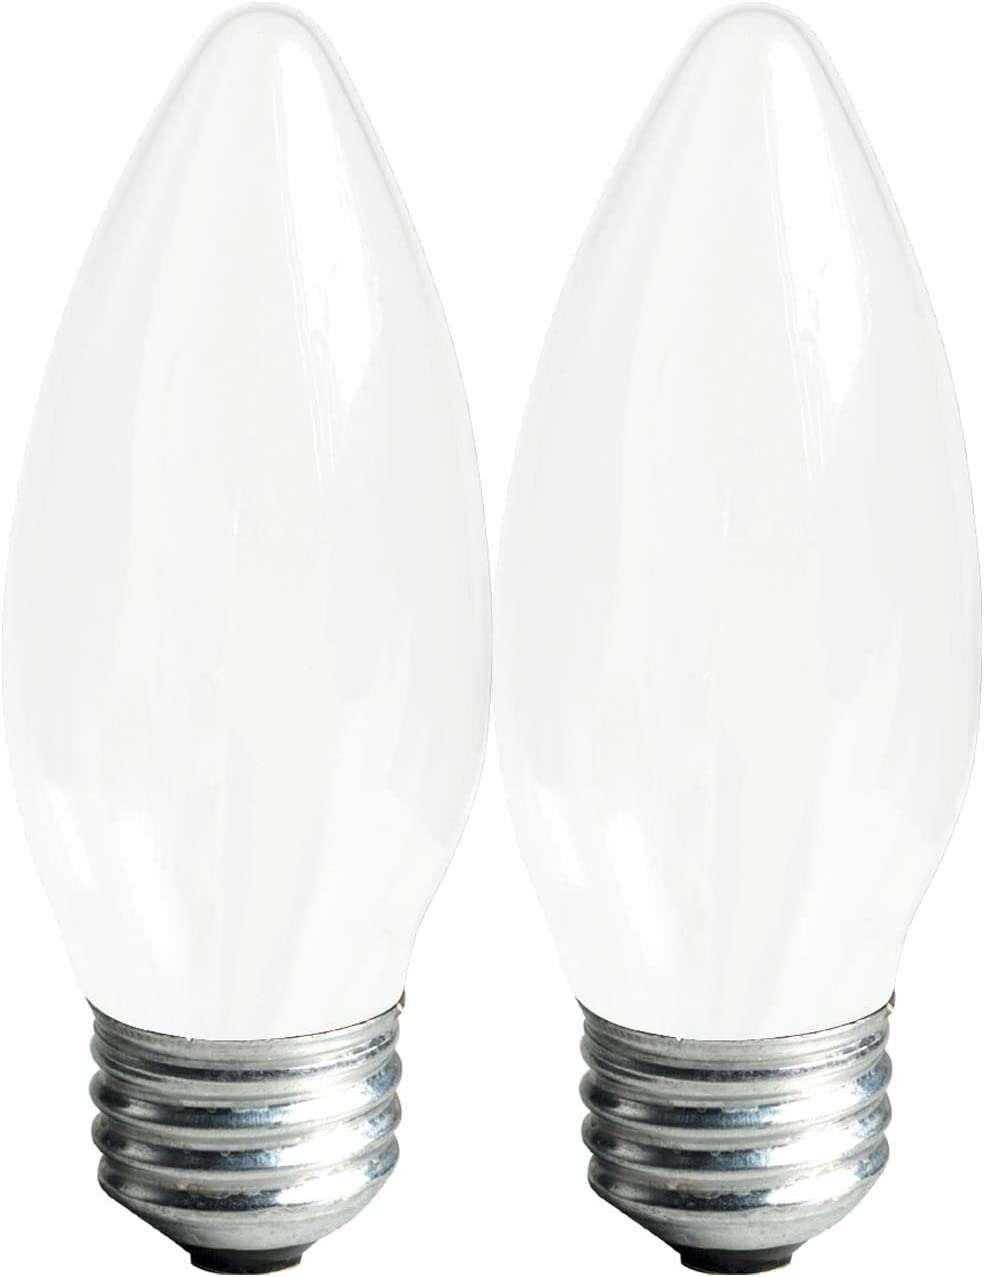 GE Lighting 25043 Frosted Finish Light Bulb Dimmable LED Soft White Decorative 4 (40-Watt Replacement), 300-Lumen Medium Base Blunt Tip, 2-Pack